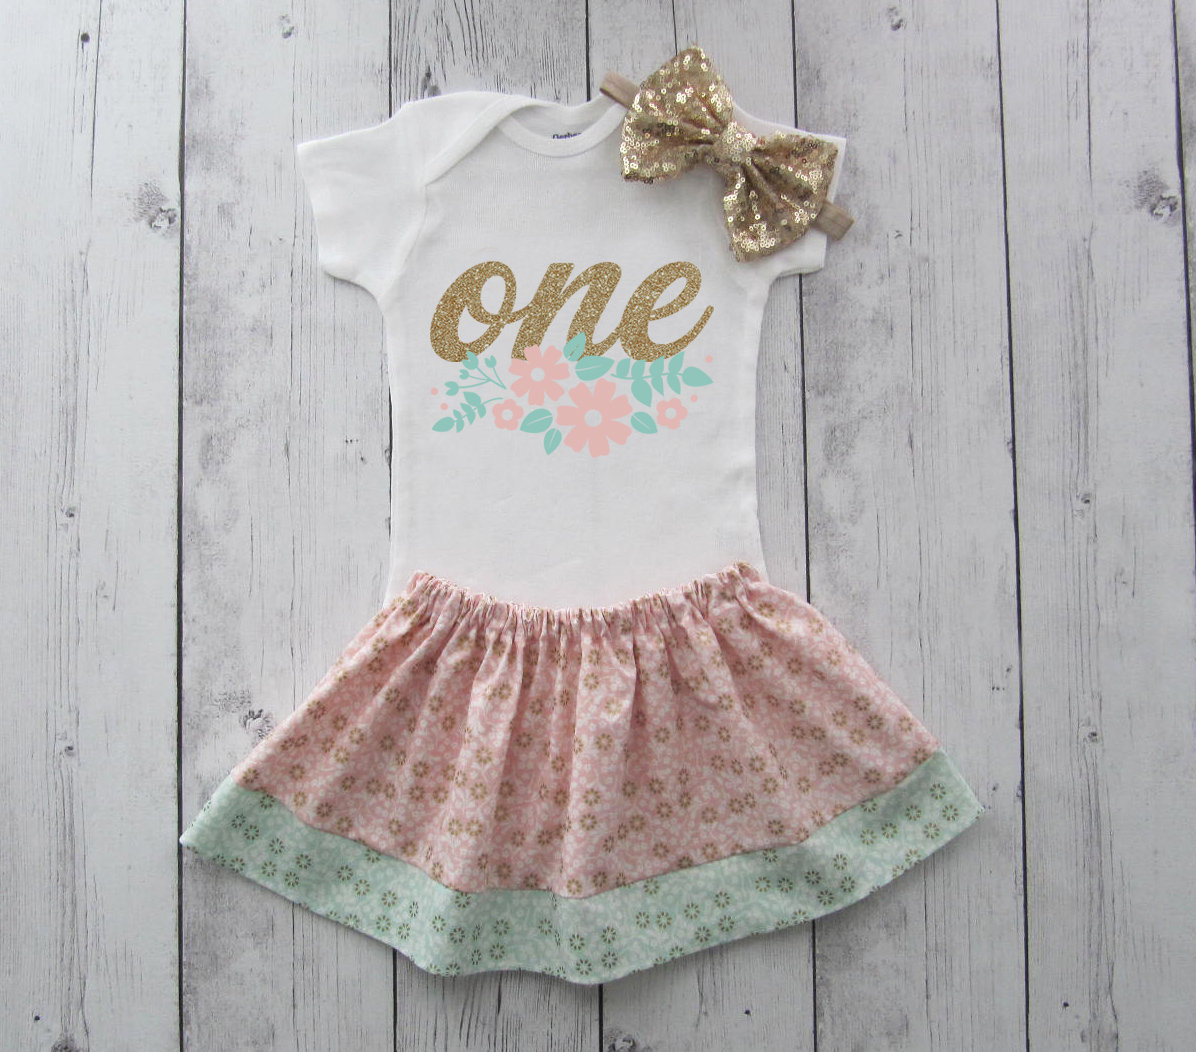 Floral First Birthday Outfit girl - floral birthday outfit, shabby chic birthday outfit, birthday outfit girl 1, pink mint gold outfit